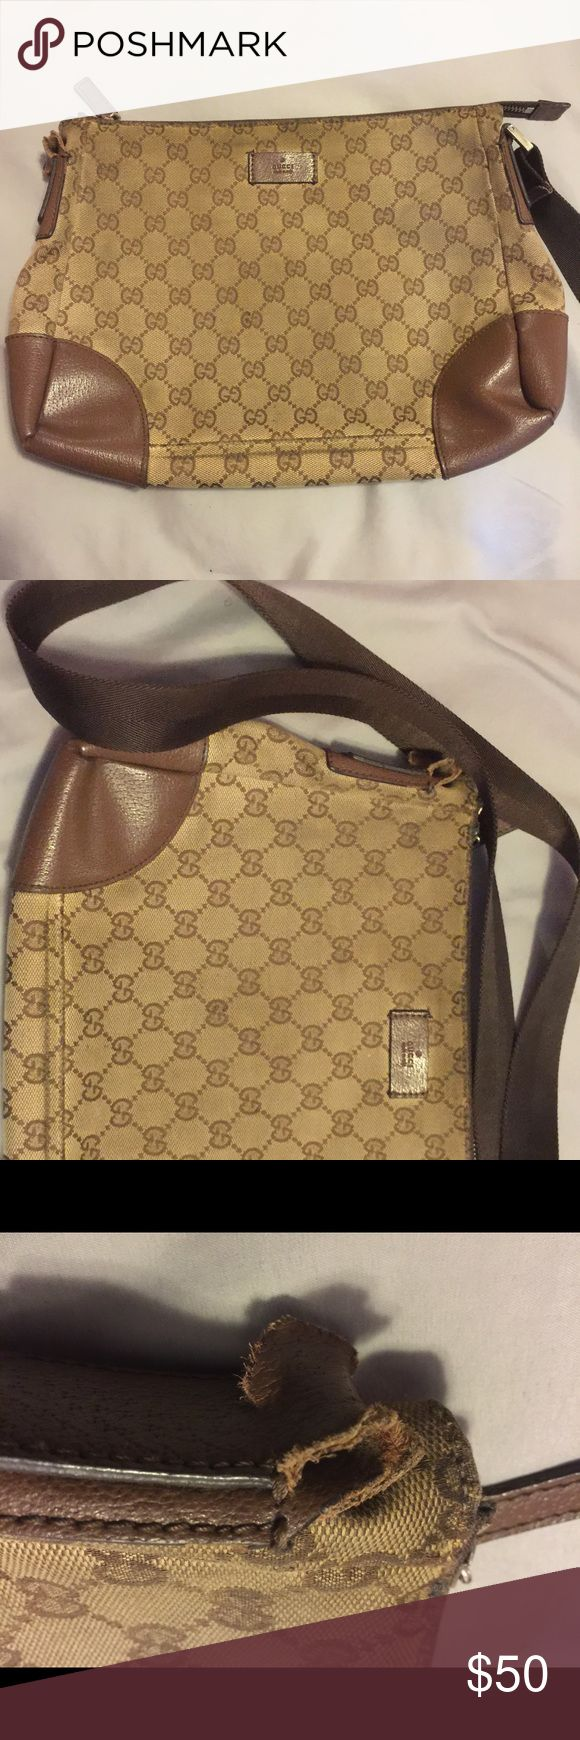 Authentic Gucci Messenger Bag PLEASE look at photos and read description carefully.  This is an authentic Gucci messenger bag that has plenty of life left but has a broken strap. The is some wear on the exterior of the bag (see photos) the interior is in excellent condition. This is not a perfect piece but can definitely be restored to great condition. Gucci Bags Crossbody Bags